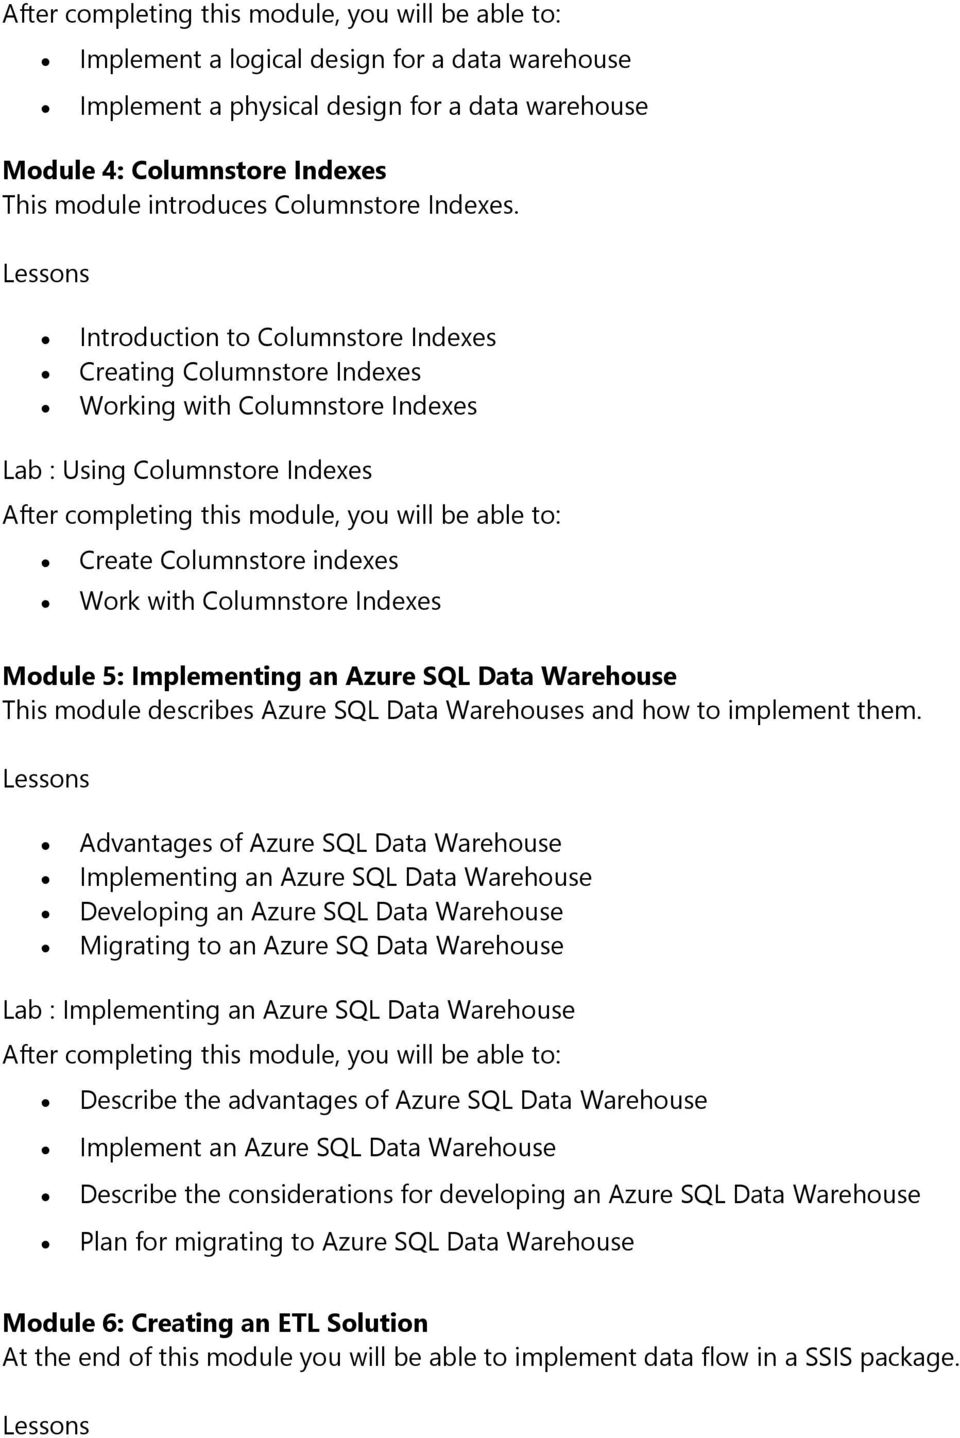 Implementing an Azure SQL Data Warehouse This module describes Azure SQL Data Warehouses and how to implement them.